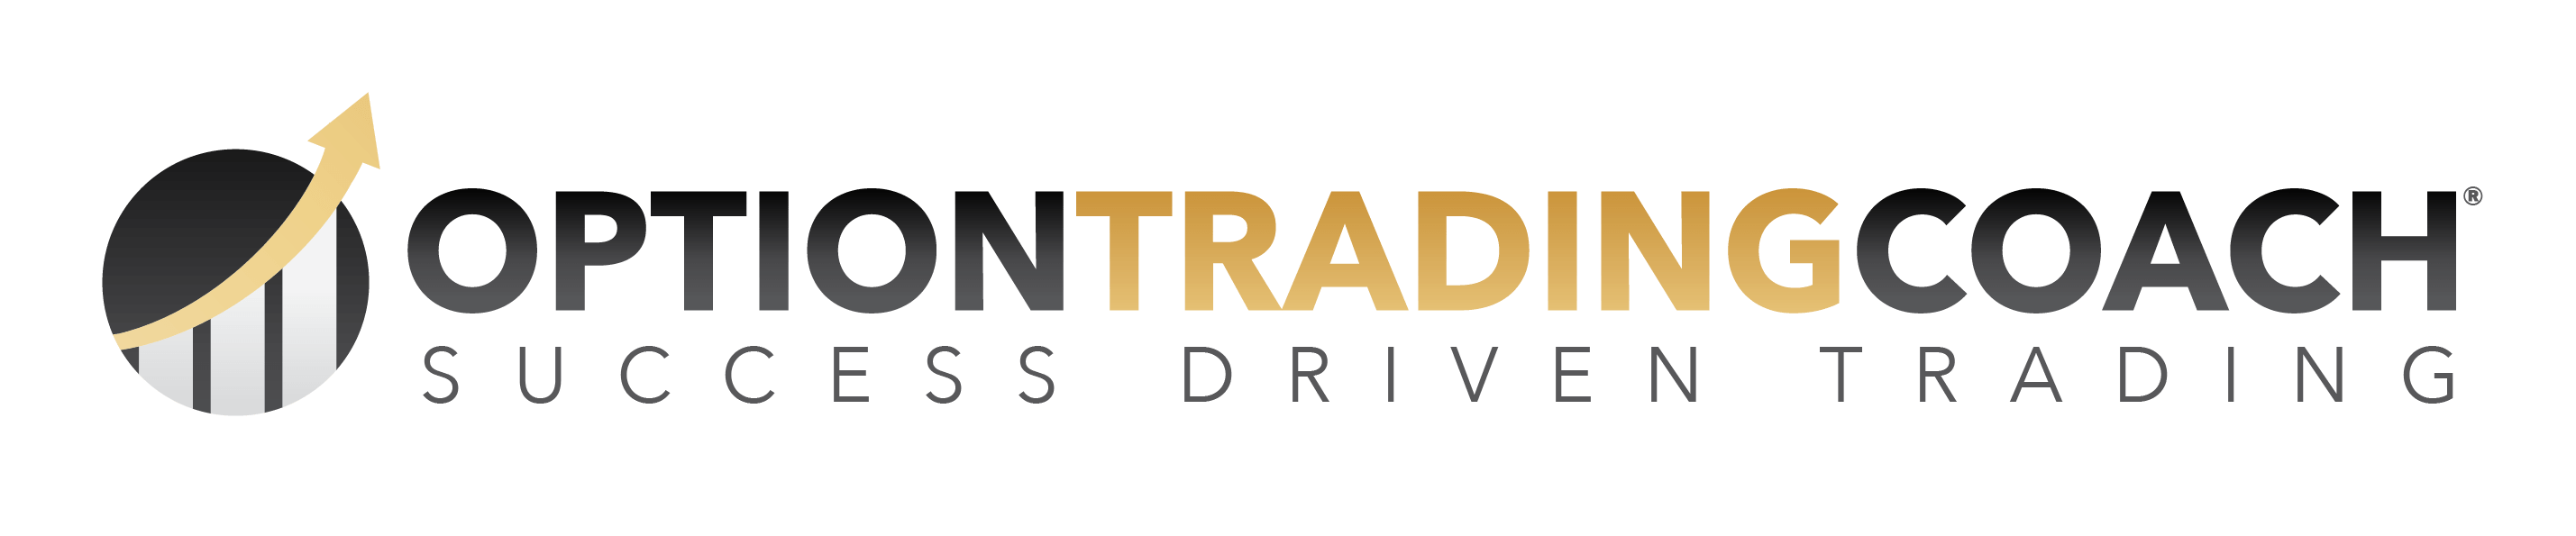 Volatility options and futures trading strategies pdf